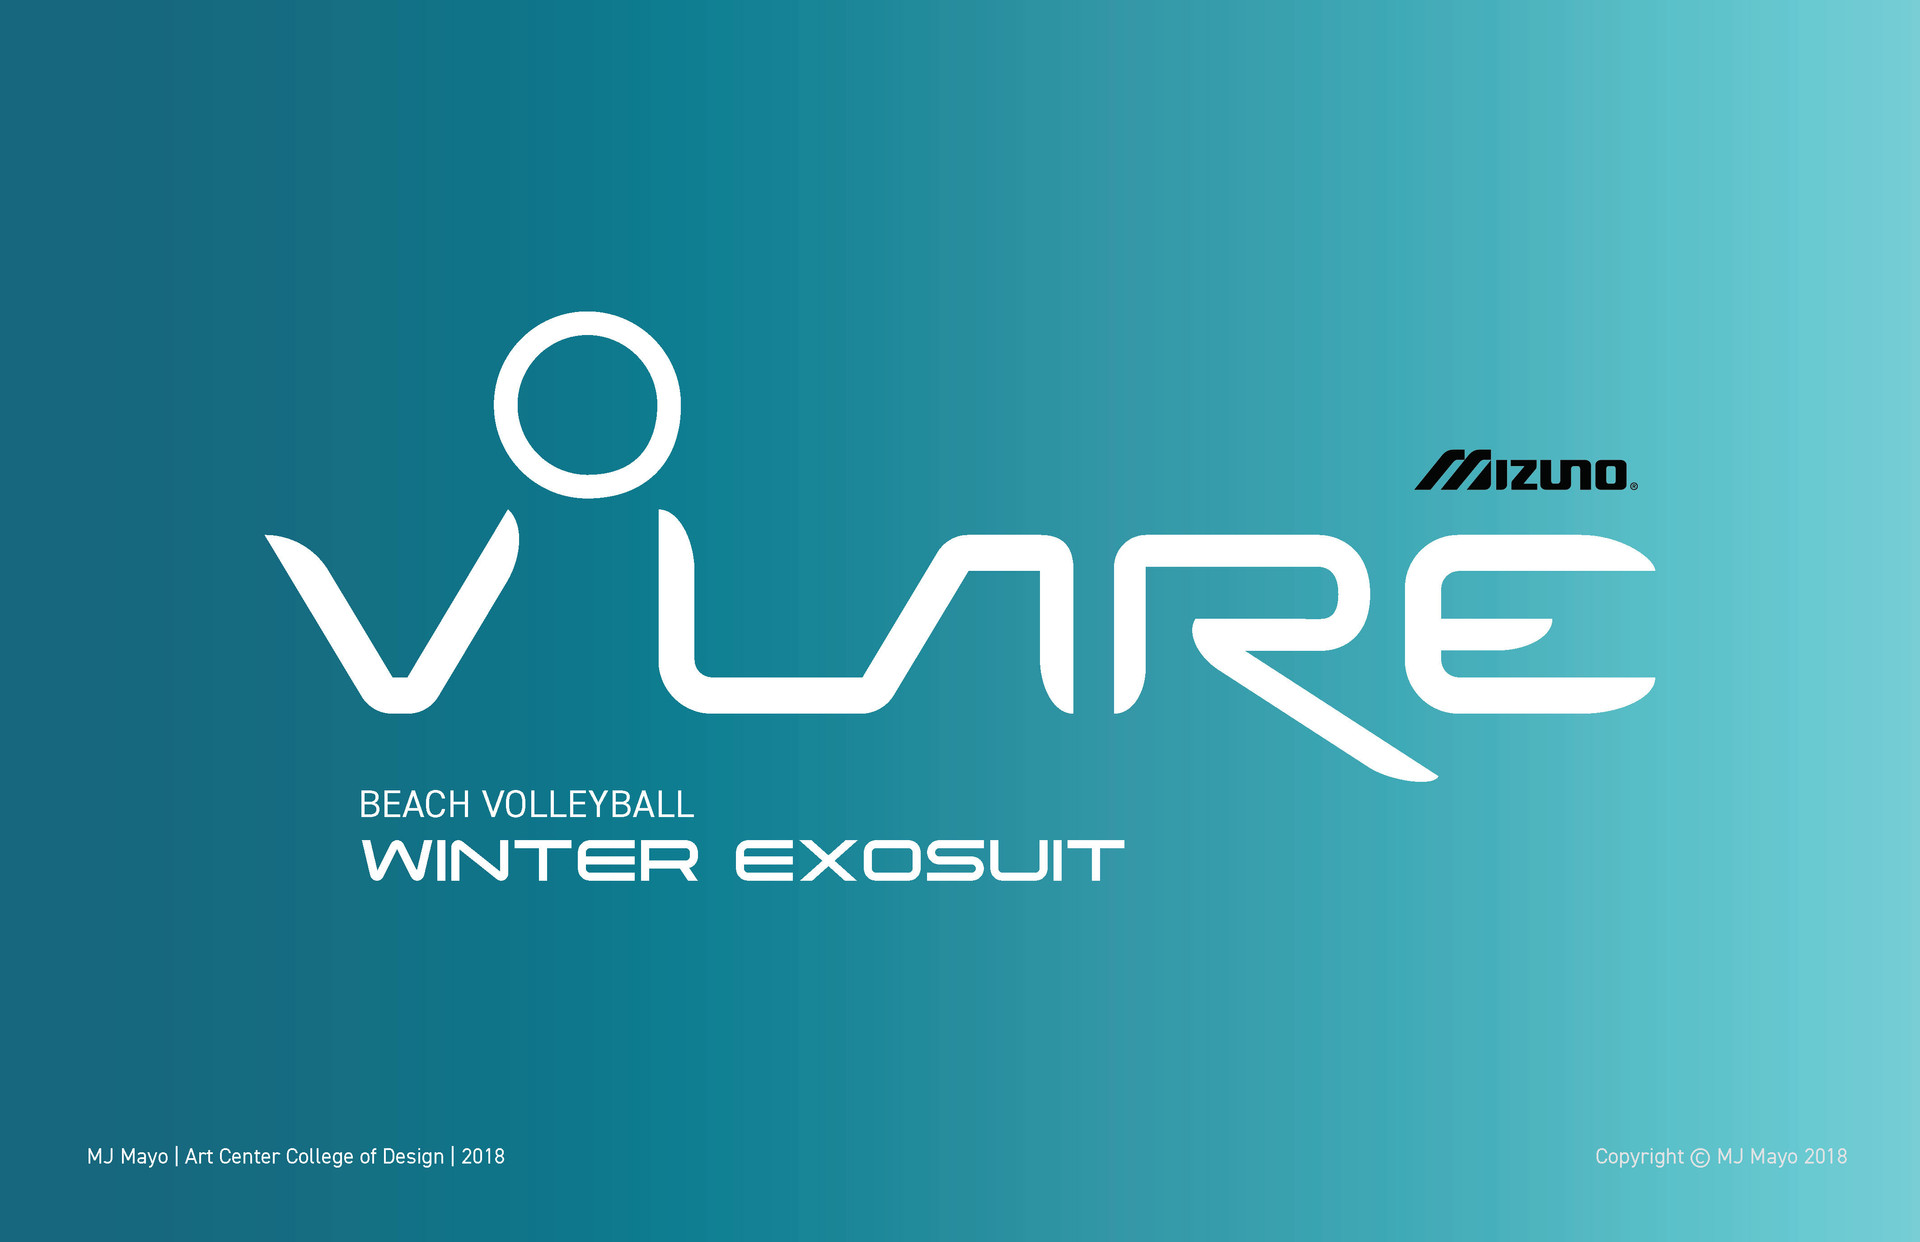 MJ Mayo Volare Winter Volleyball Exosuit